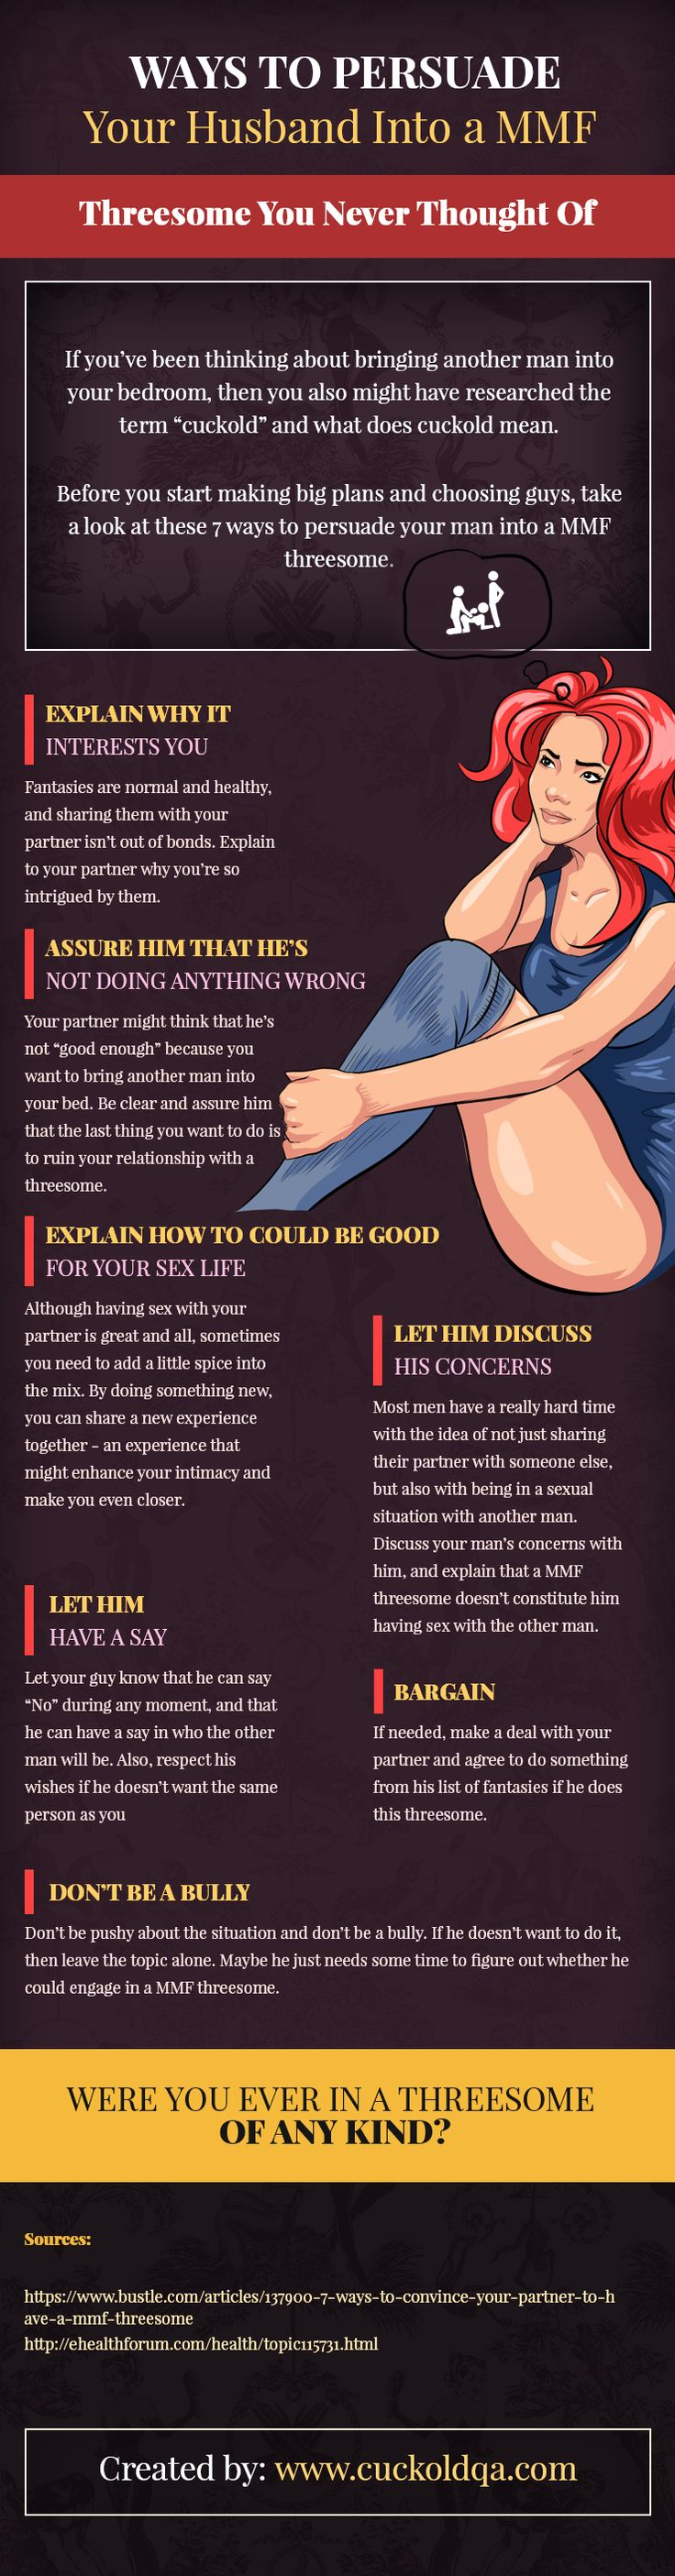 "If you've been thinking about bringing another man into your bedroom, then you also might have researched the term ""cuckold"" and what does cuckold mean.  Before you start making big plans and choosing guys, take a look at these 7 ways to persuade your man into a MMF threesome."